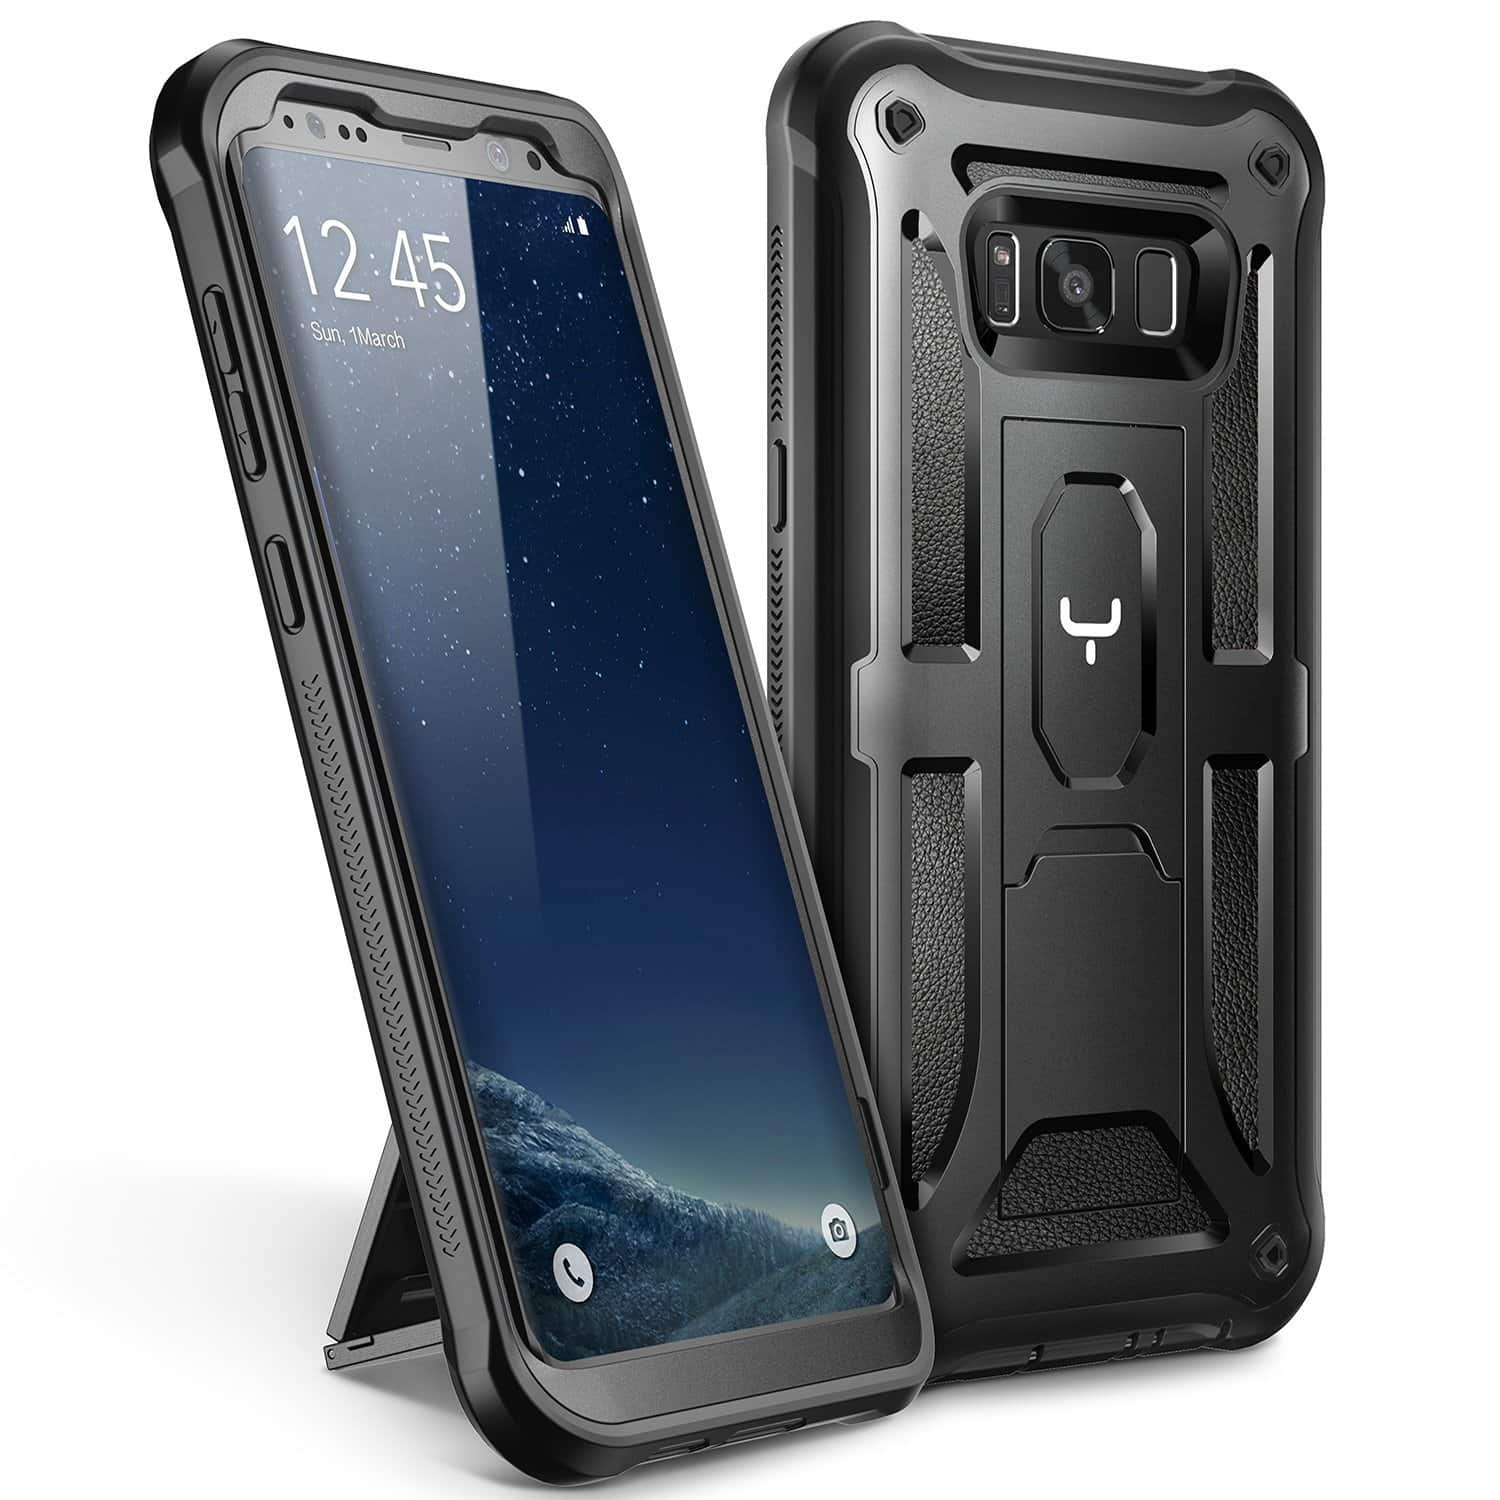 Galaxy S8 and S8 Plus cases